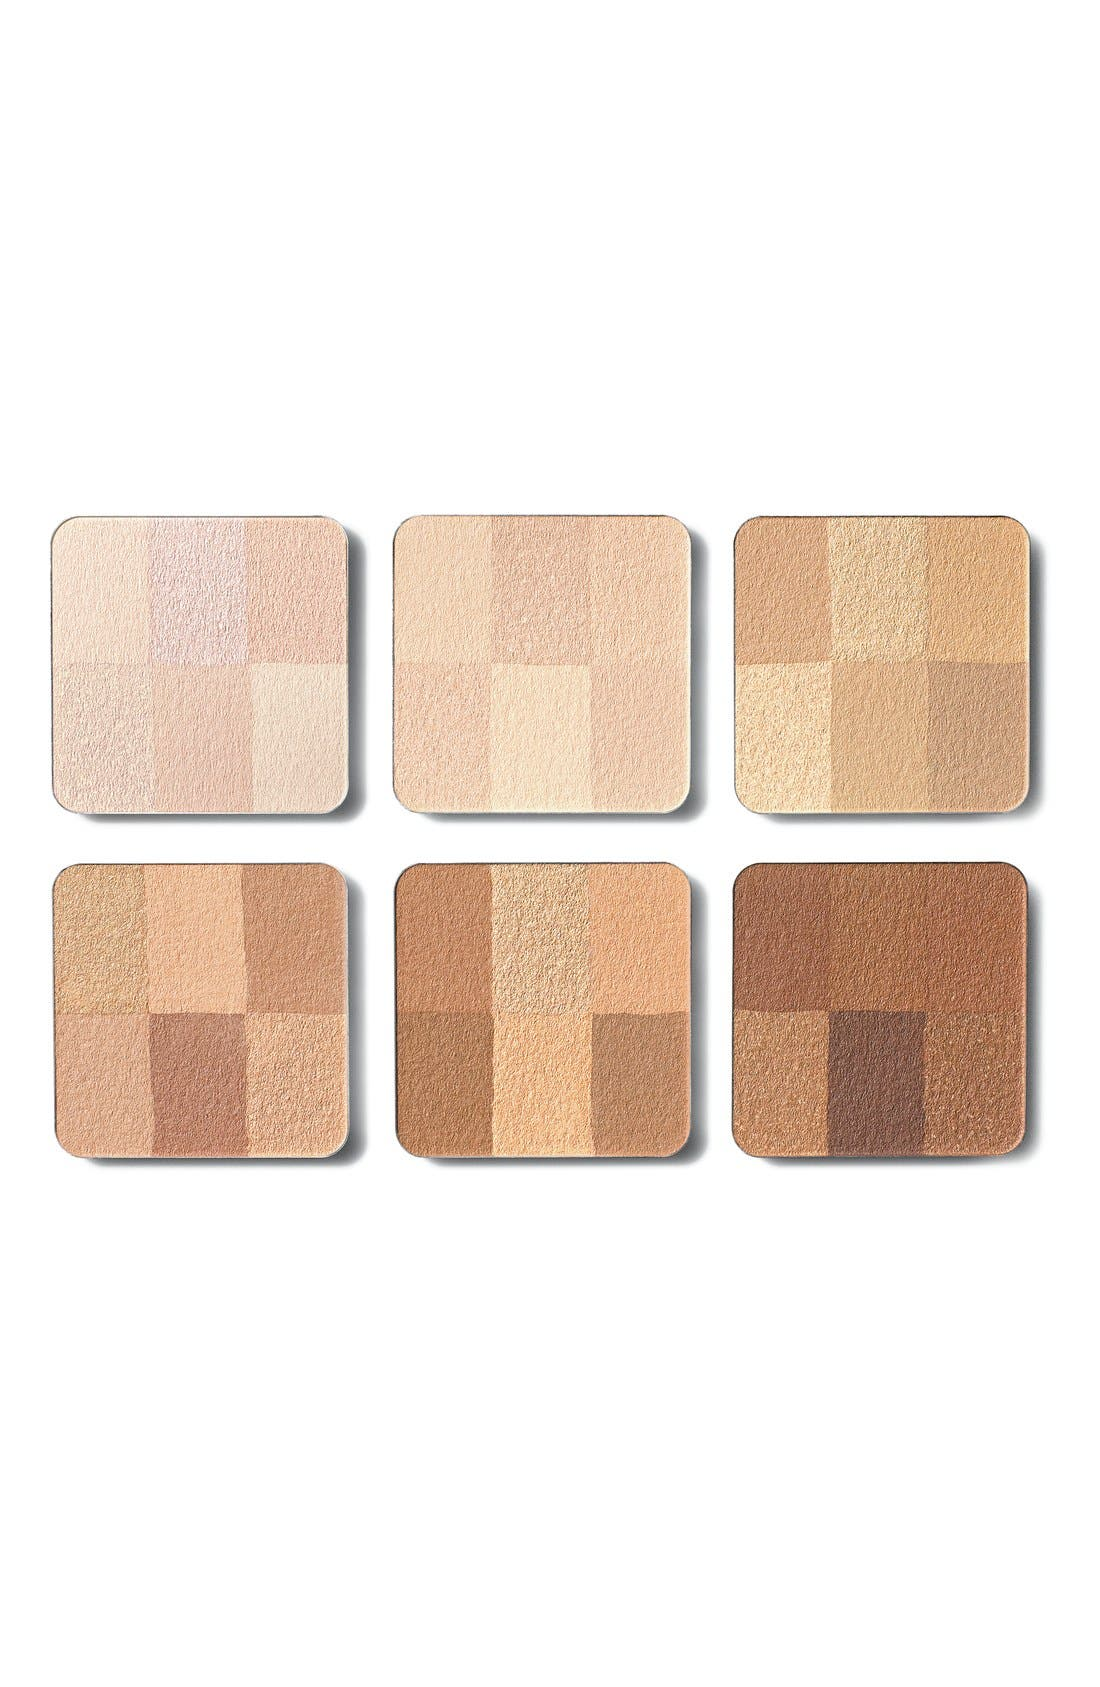 Nude Finish Illuminating Powder,                             Alternate thumbnail 2, color,                             RICH